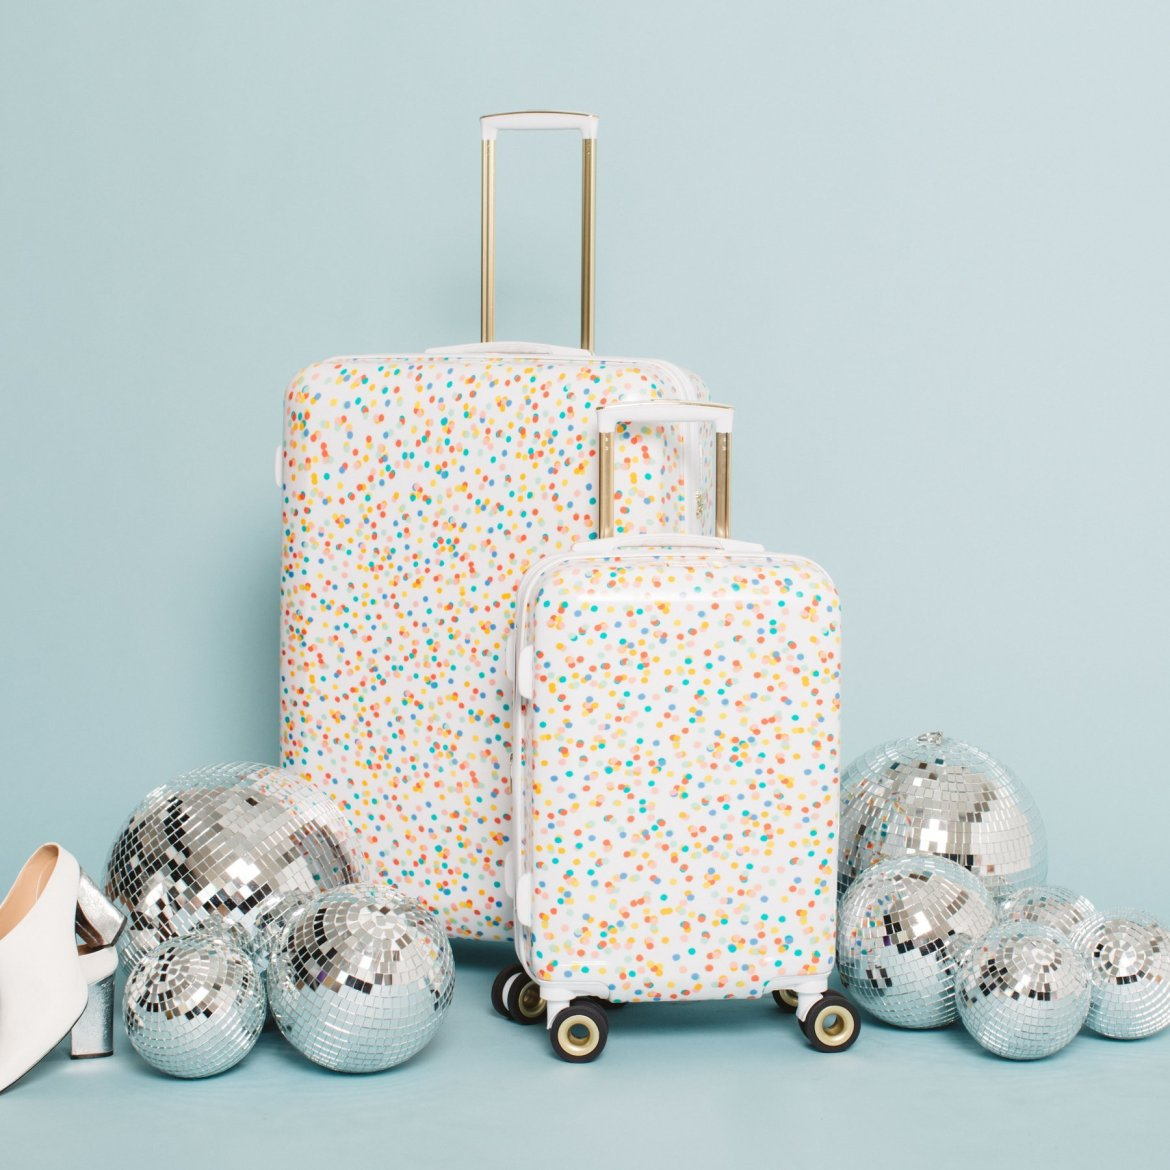 Cute Luggage that will Make you Want to Plan a Vacation Right Away